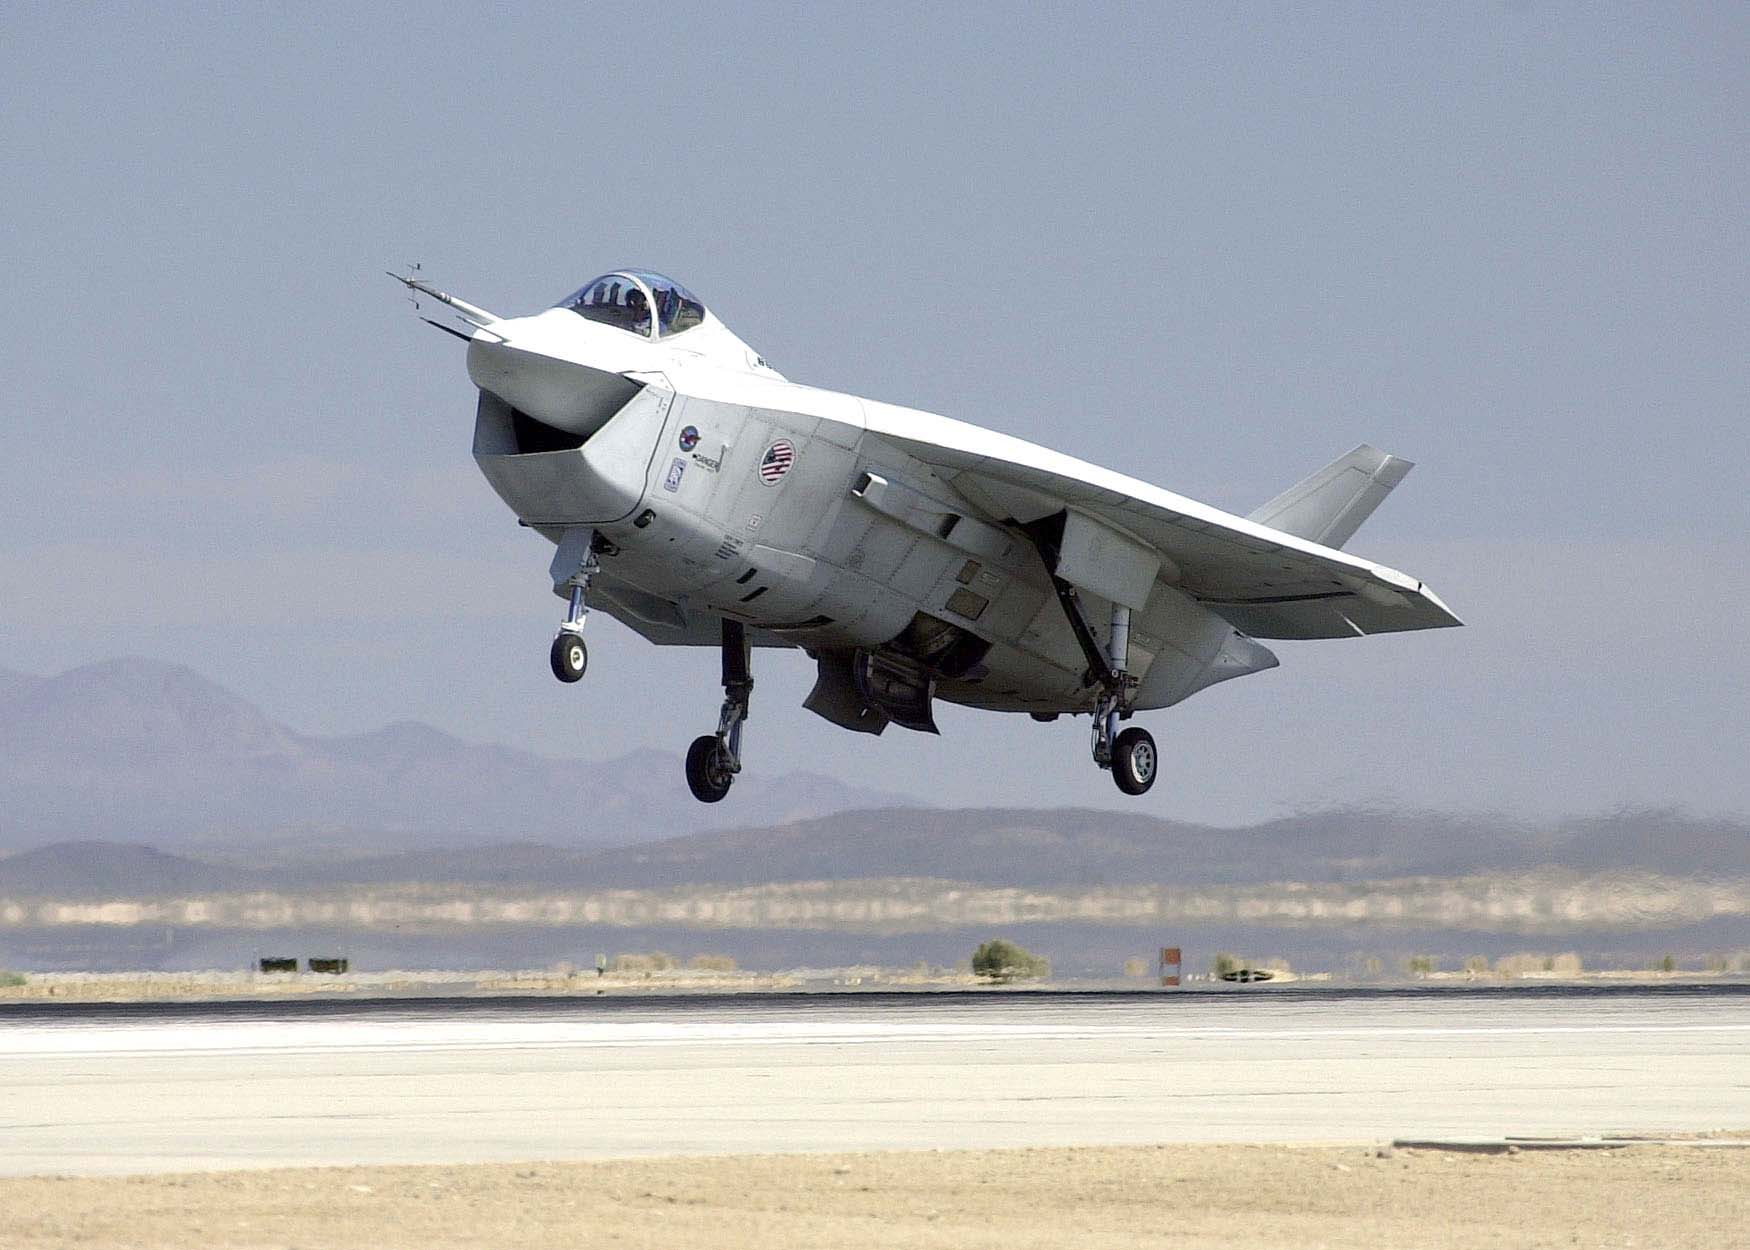 Boeing X-32 - Wikipedia, the free encyclopedia